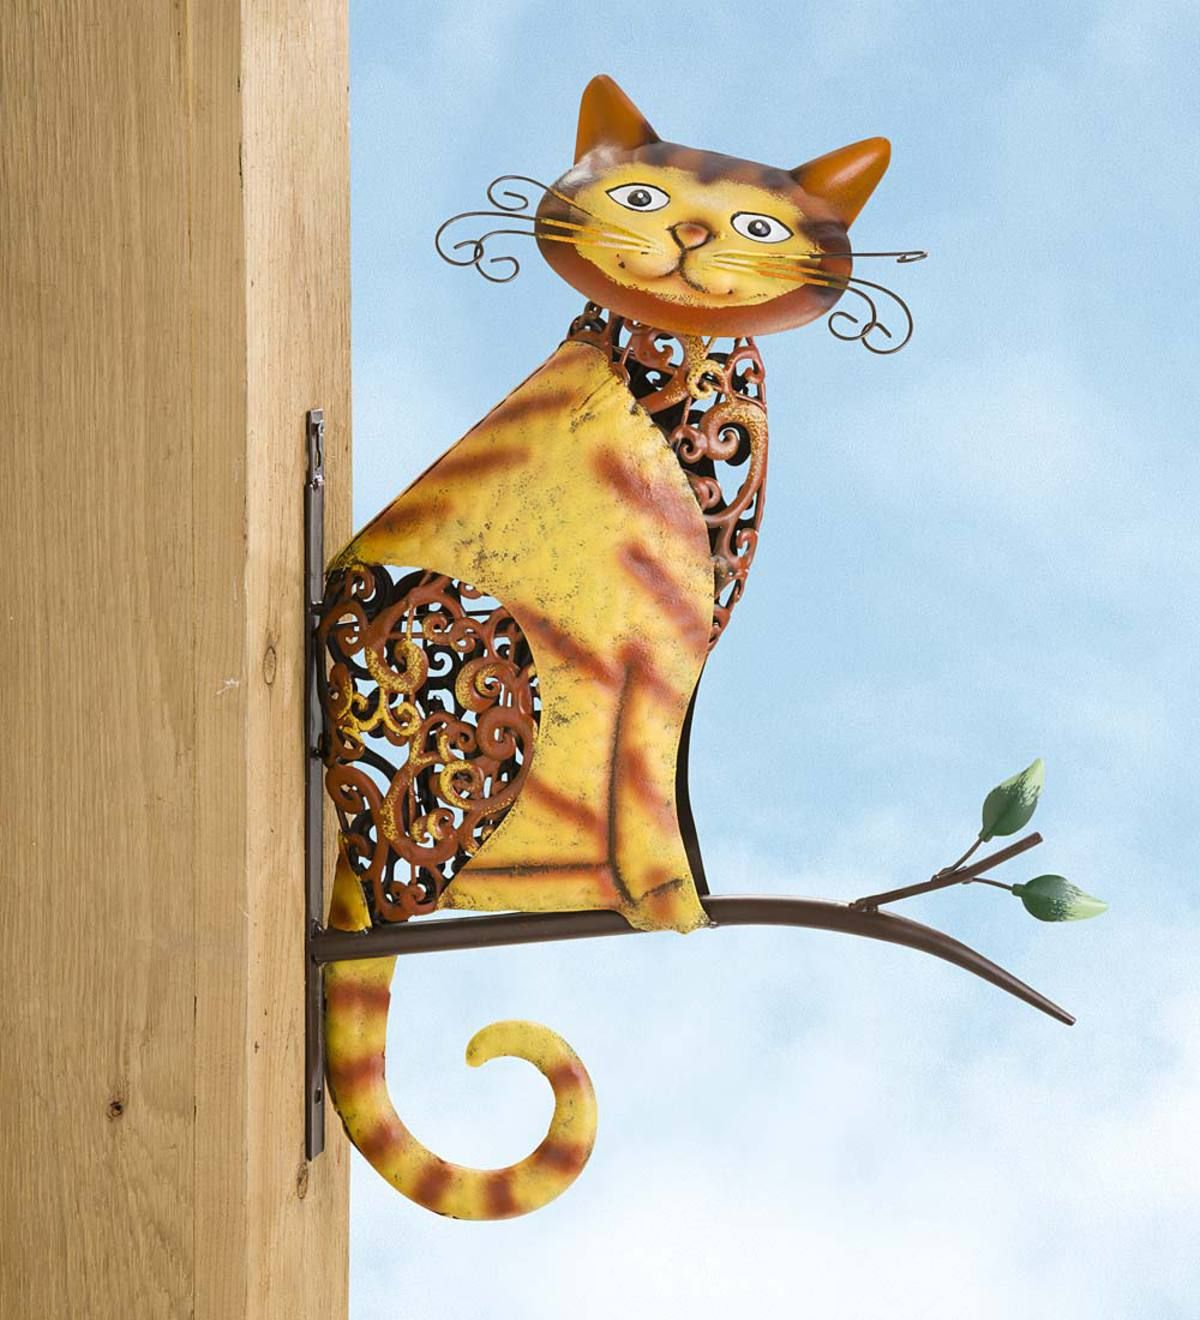 One Friendly Feline Perches On A Branch In Our Metal Tabby Cat On A Branch Wall Art This Adorable Ginger Kitty Is Crafted From Painted Metal Bird Statues Cat Wall Art